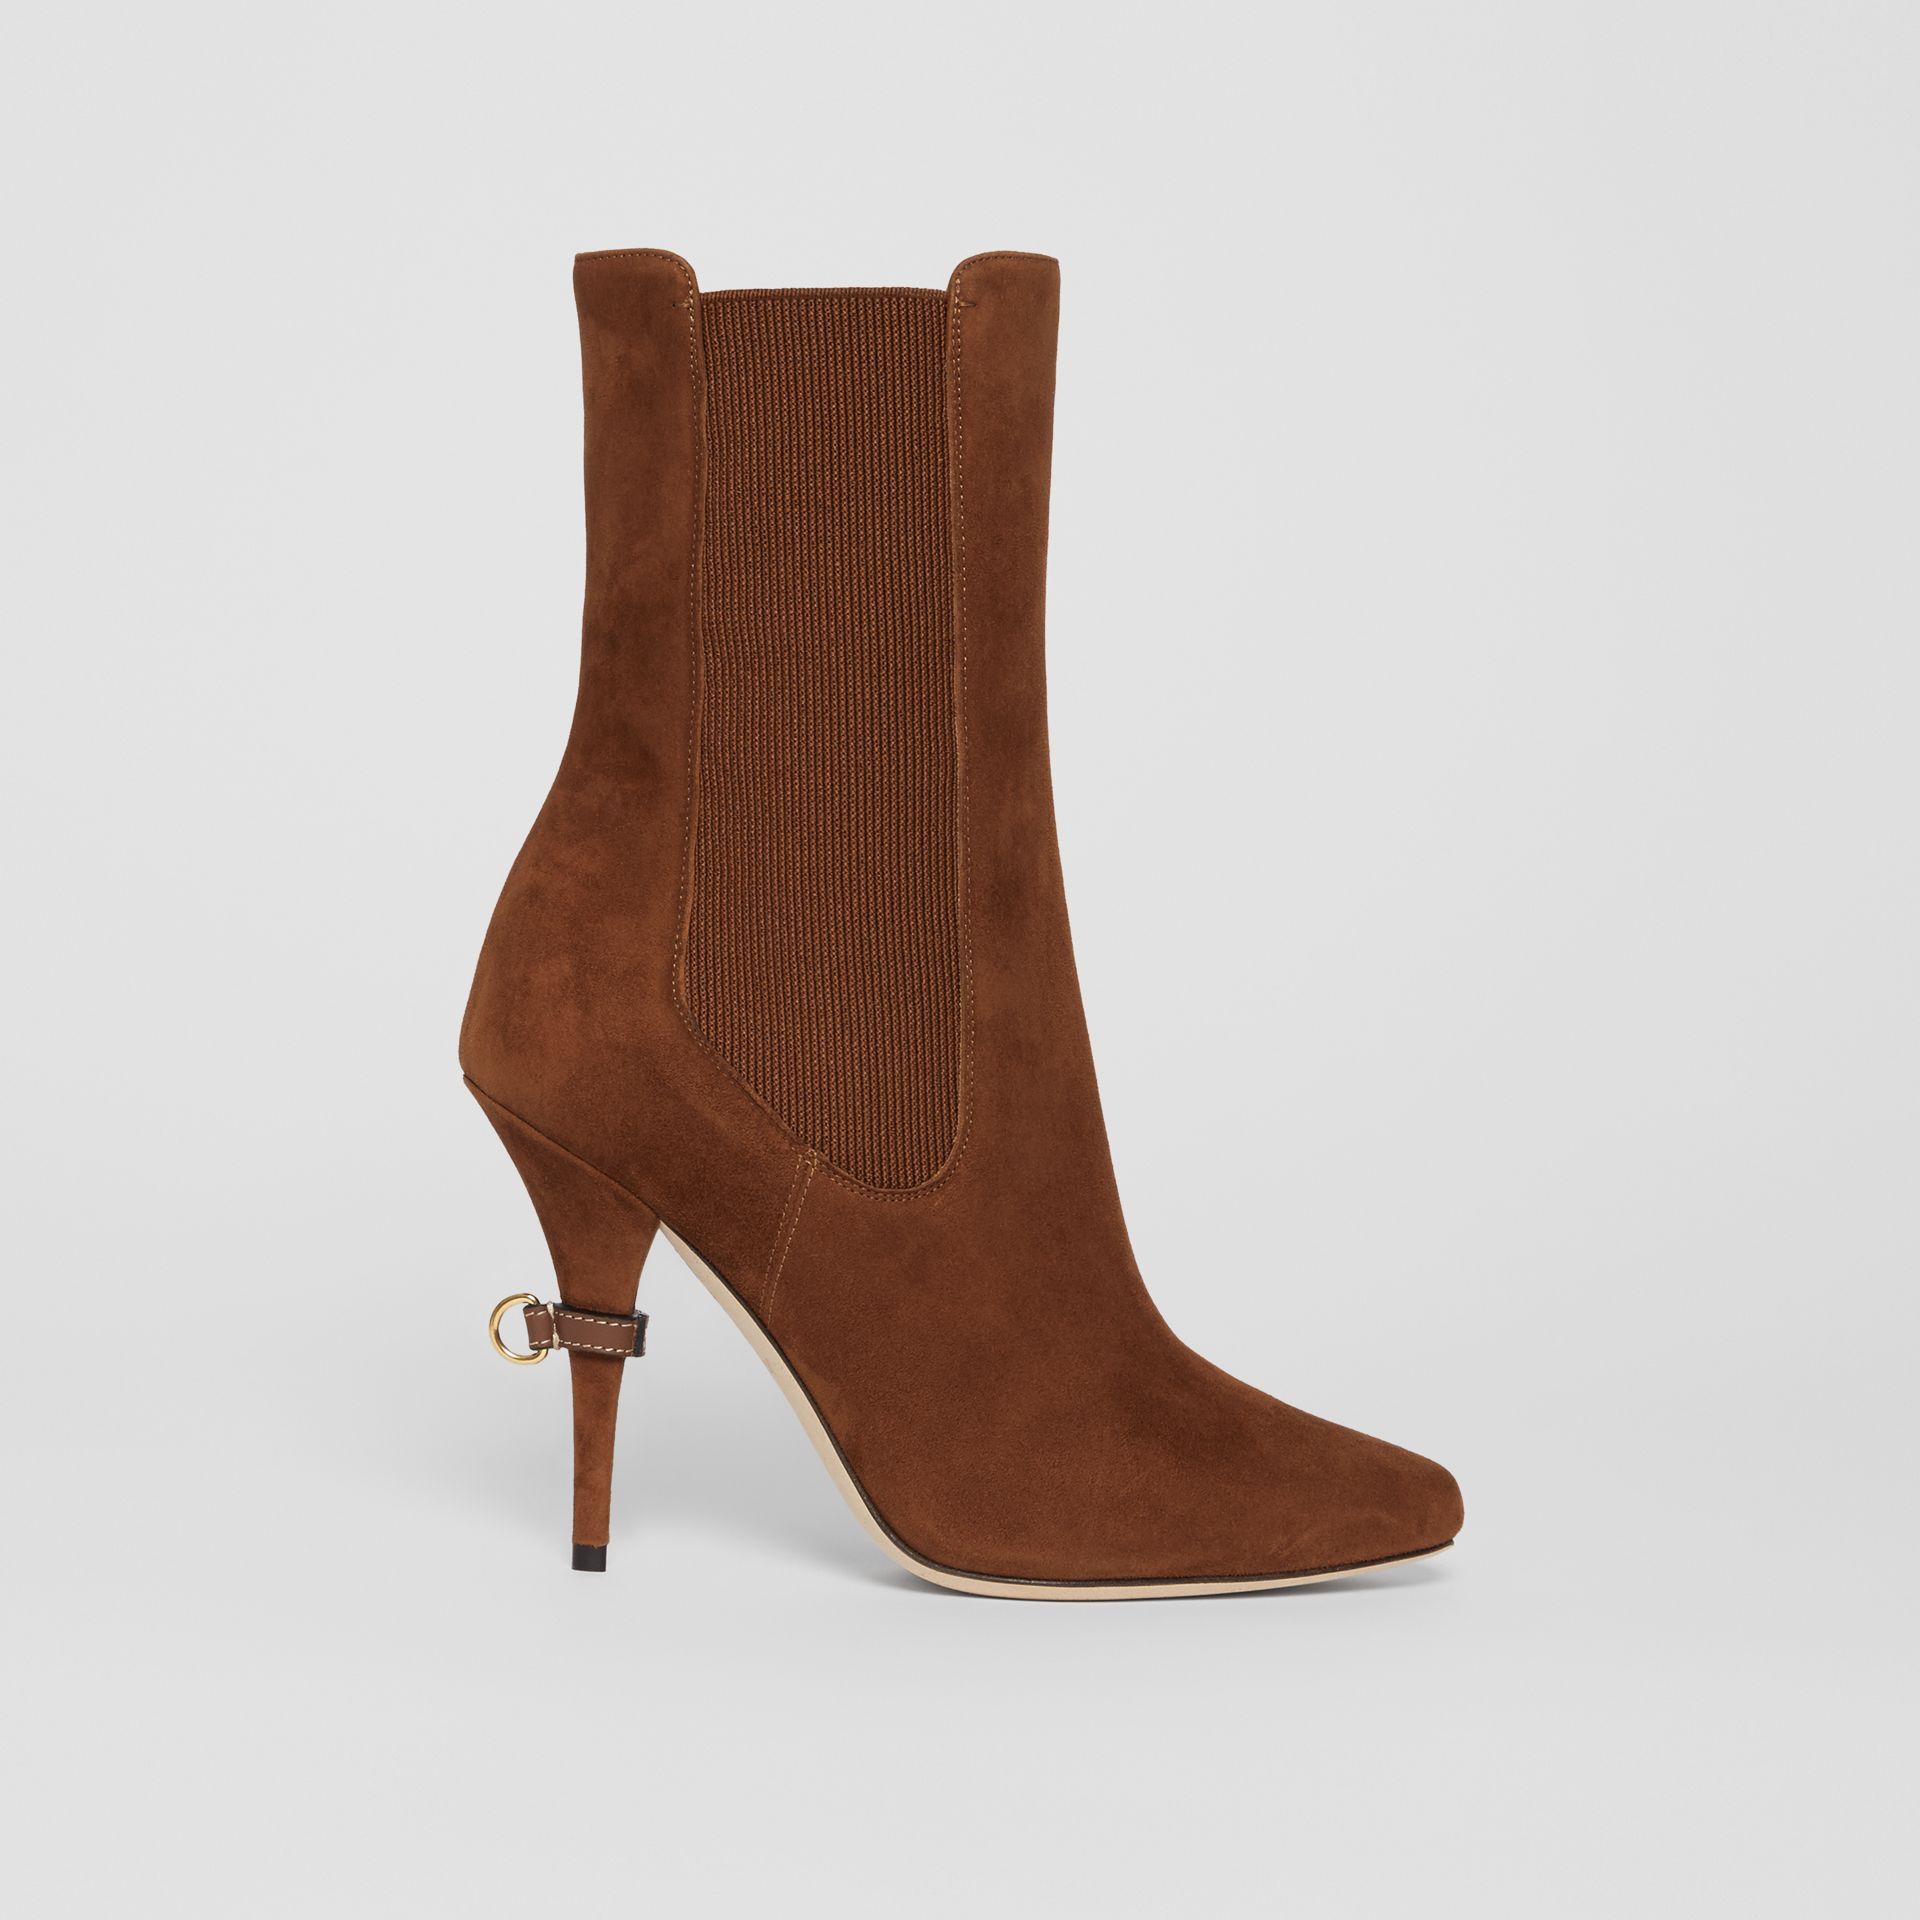 D-ring Detail Suede Ankle Boots in Tan - Women | Burberry Canada - gallery image 5